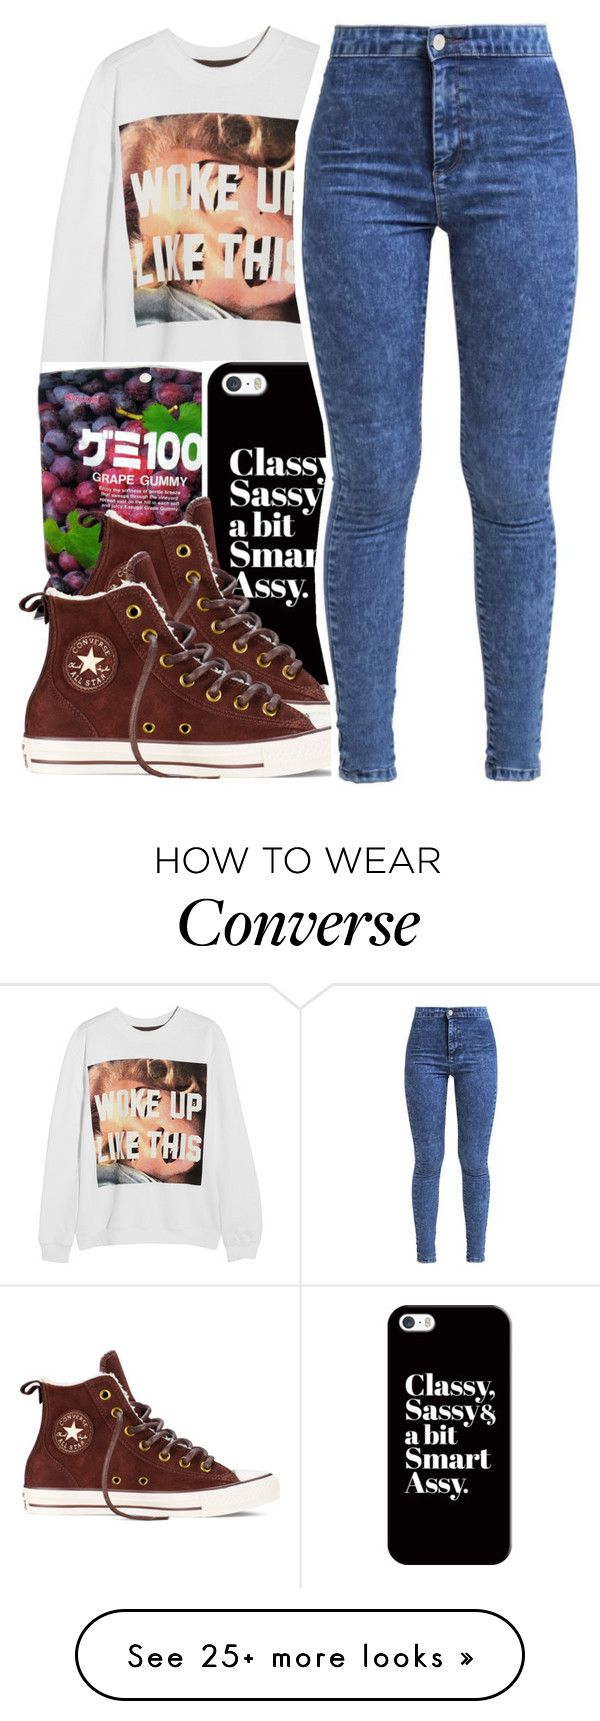 """""""Untitled #185"""" by mxdnightziam on Polyvore featuring moda, Untitled & Co, Casetify, Converse, Miss Selfridge, outfit, denim, converse, Beyonce i BeyHive"""